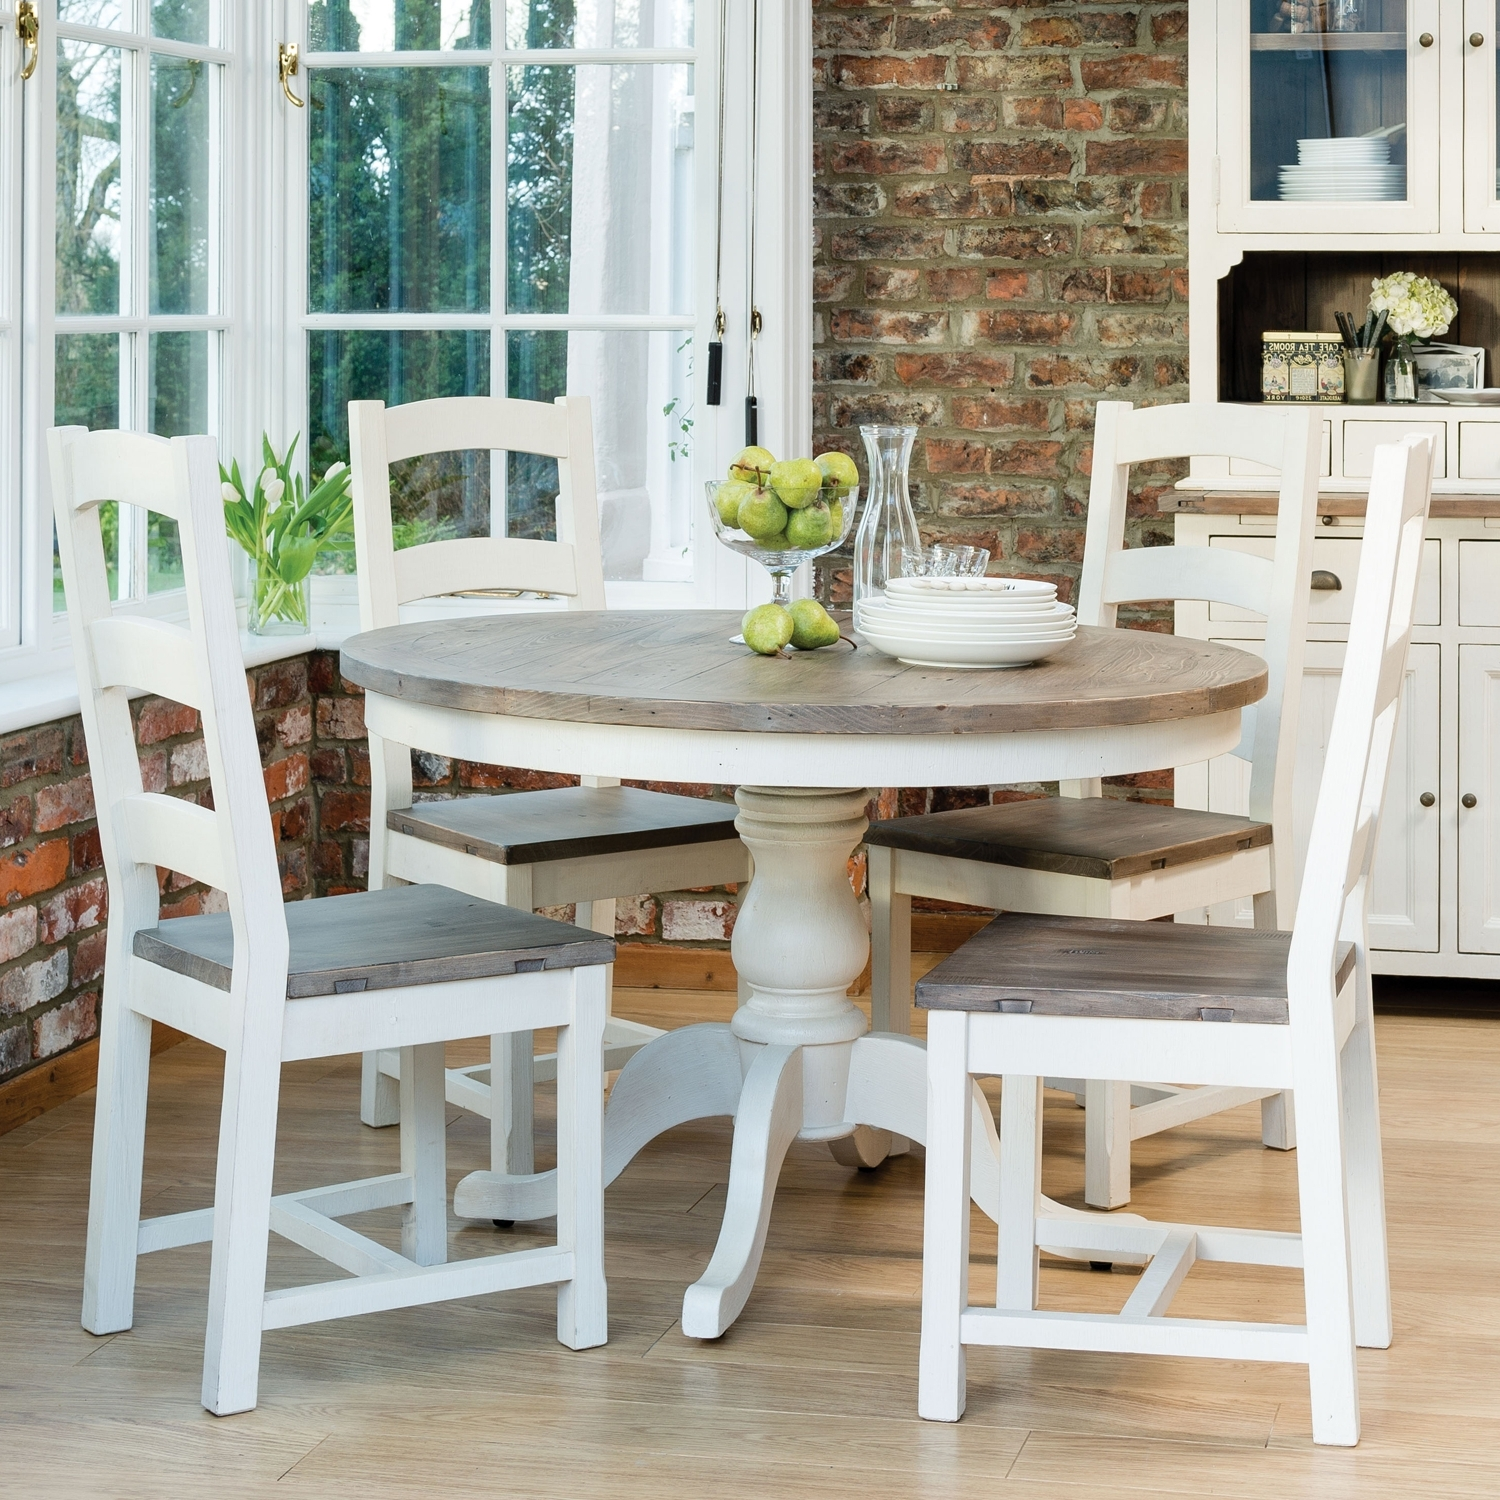 Cotswold Dining Tables In Well Liked Casa Cotswold Circular Table & 4 Wooden Chairs Dining Set (View 5 of 25)